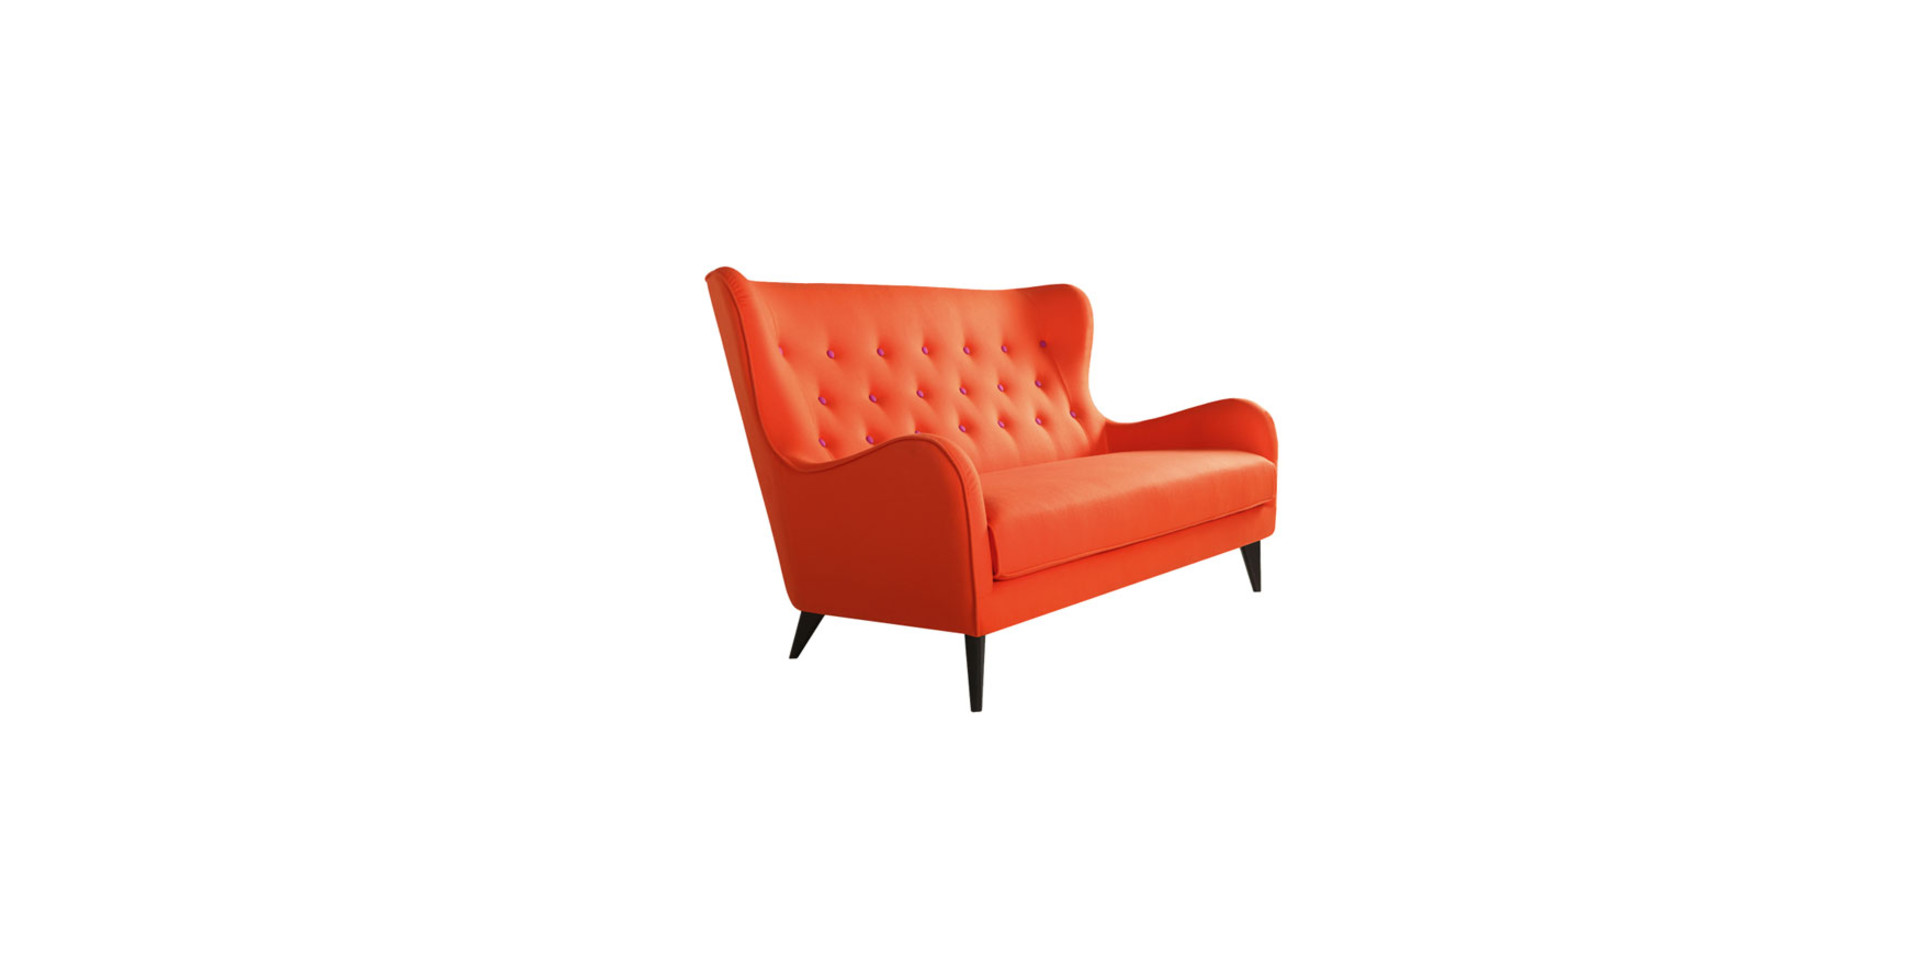 sits-pola-canape-2,5seater_panno2036_orange_buttons_panno2026_pink_4_0